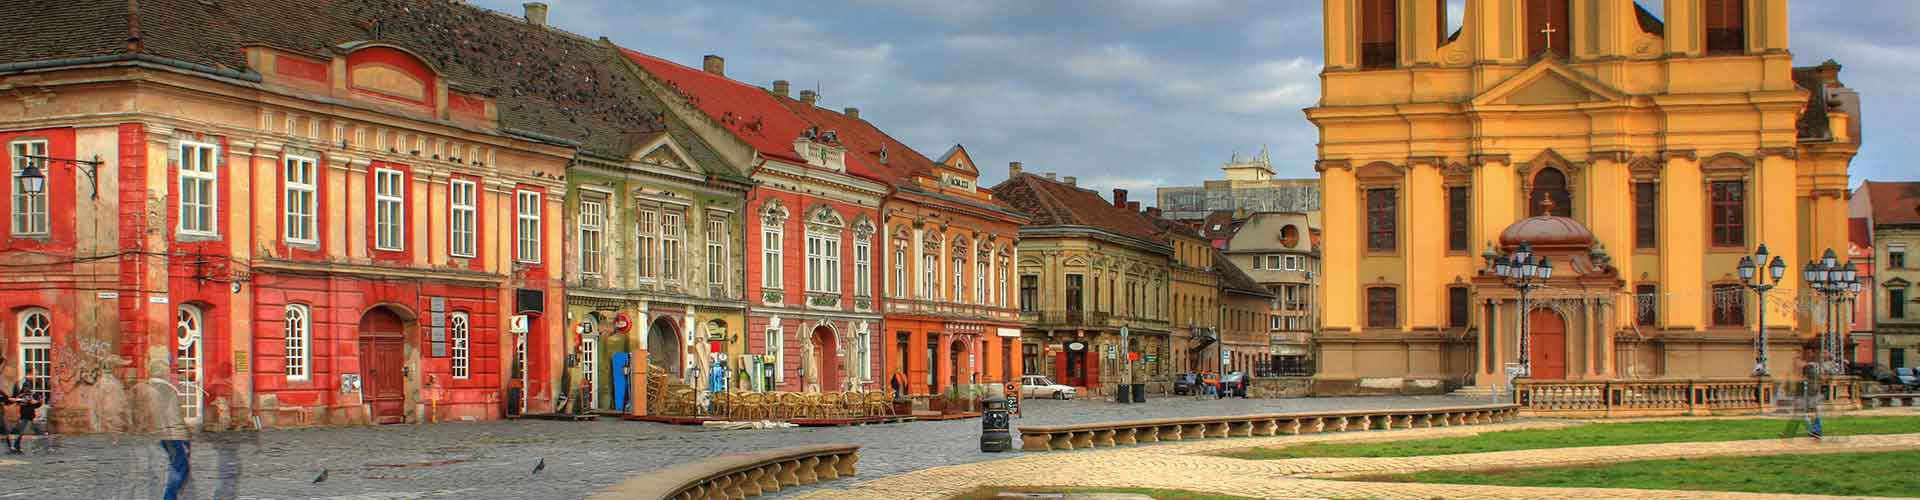 Timisoara – Hostels in Timisoara. Maps for Timisoara, Photos and Reviews for each hostel in Timisoara.